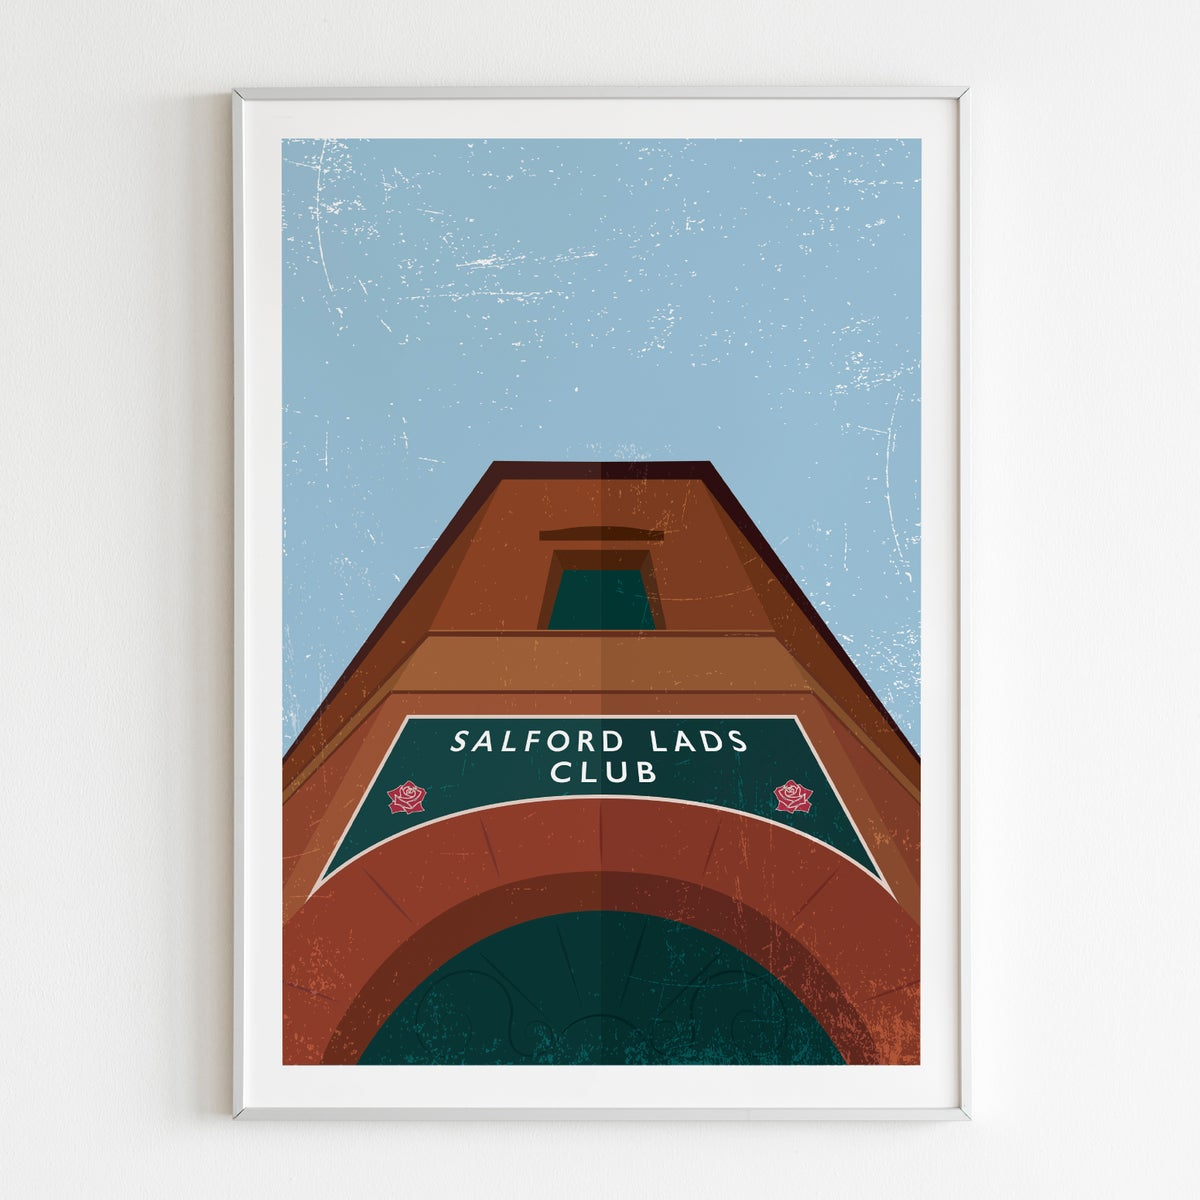 Image of Salford Lads Club Poster